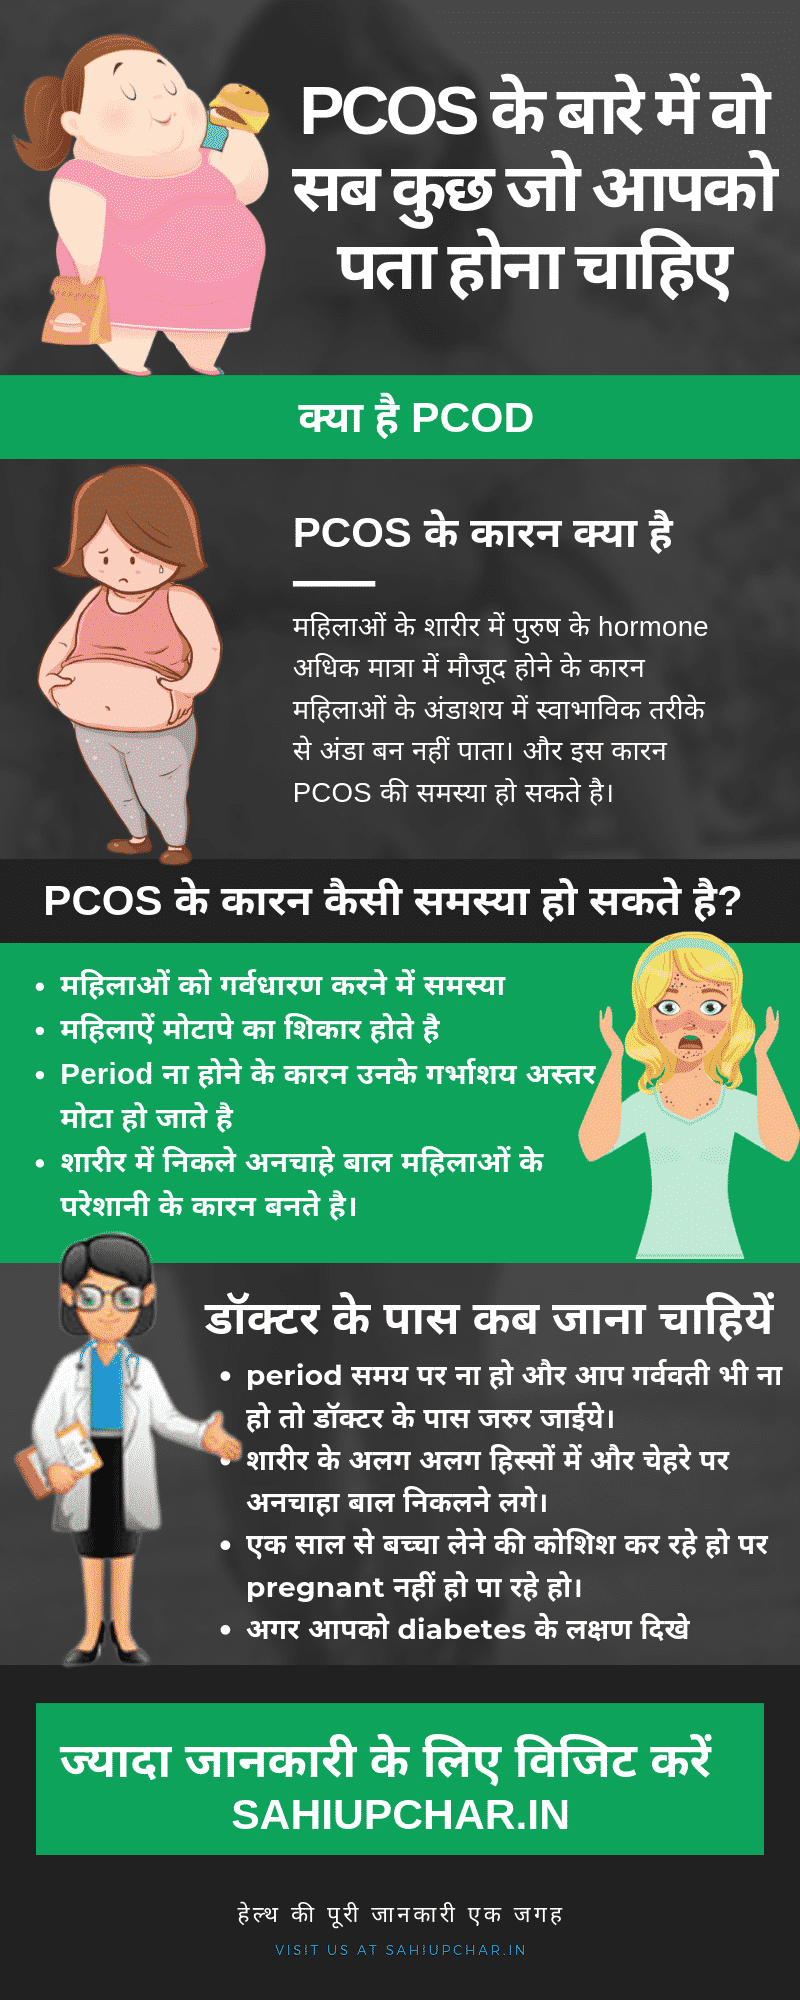 what-is-pcos-lakshan-gharelu-upay-treatment-hindi